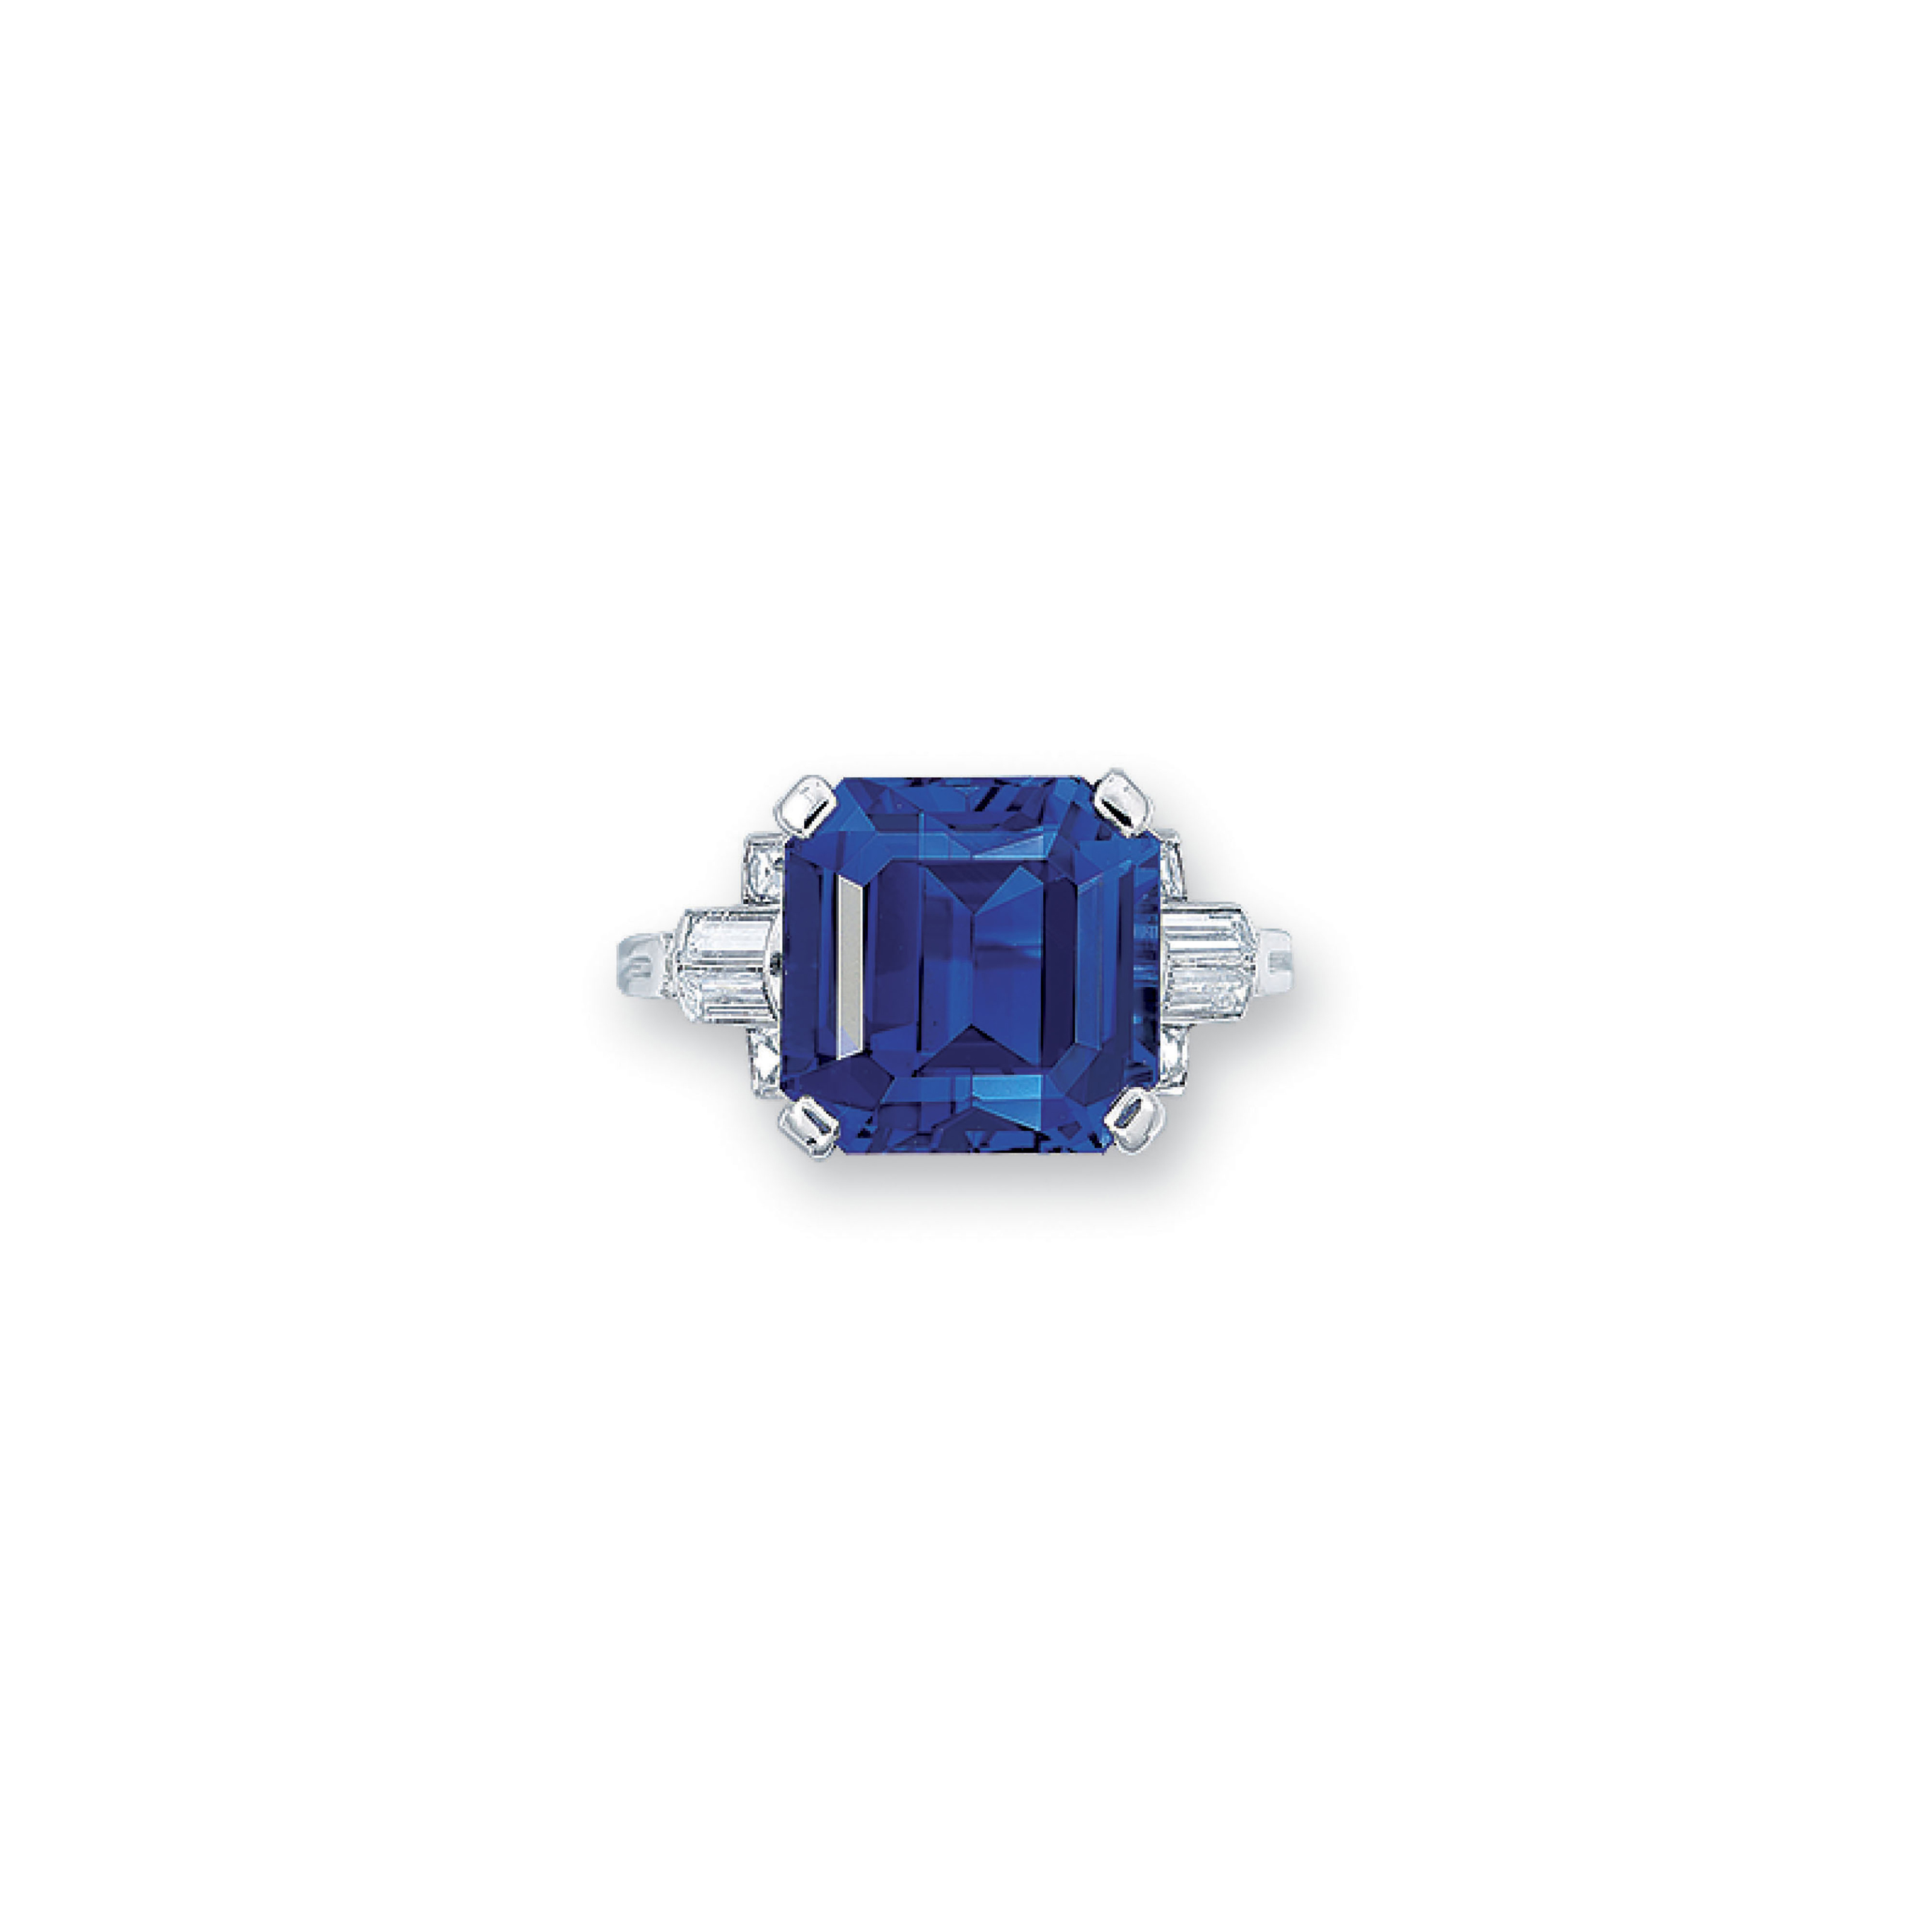 AN IMPORTANT SAPPHIRE AND DIAMOND RING, BY TIFFANY & CO.